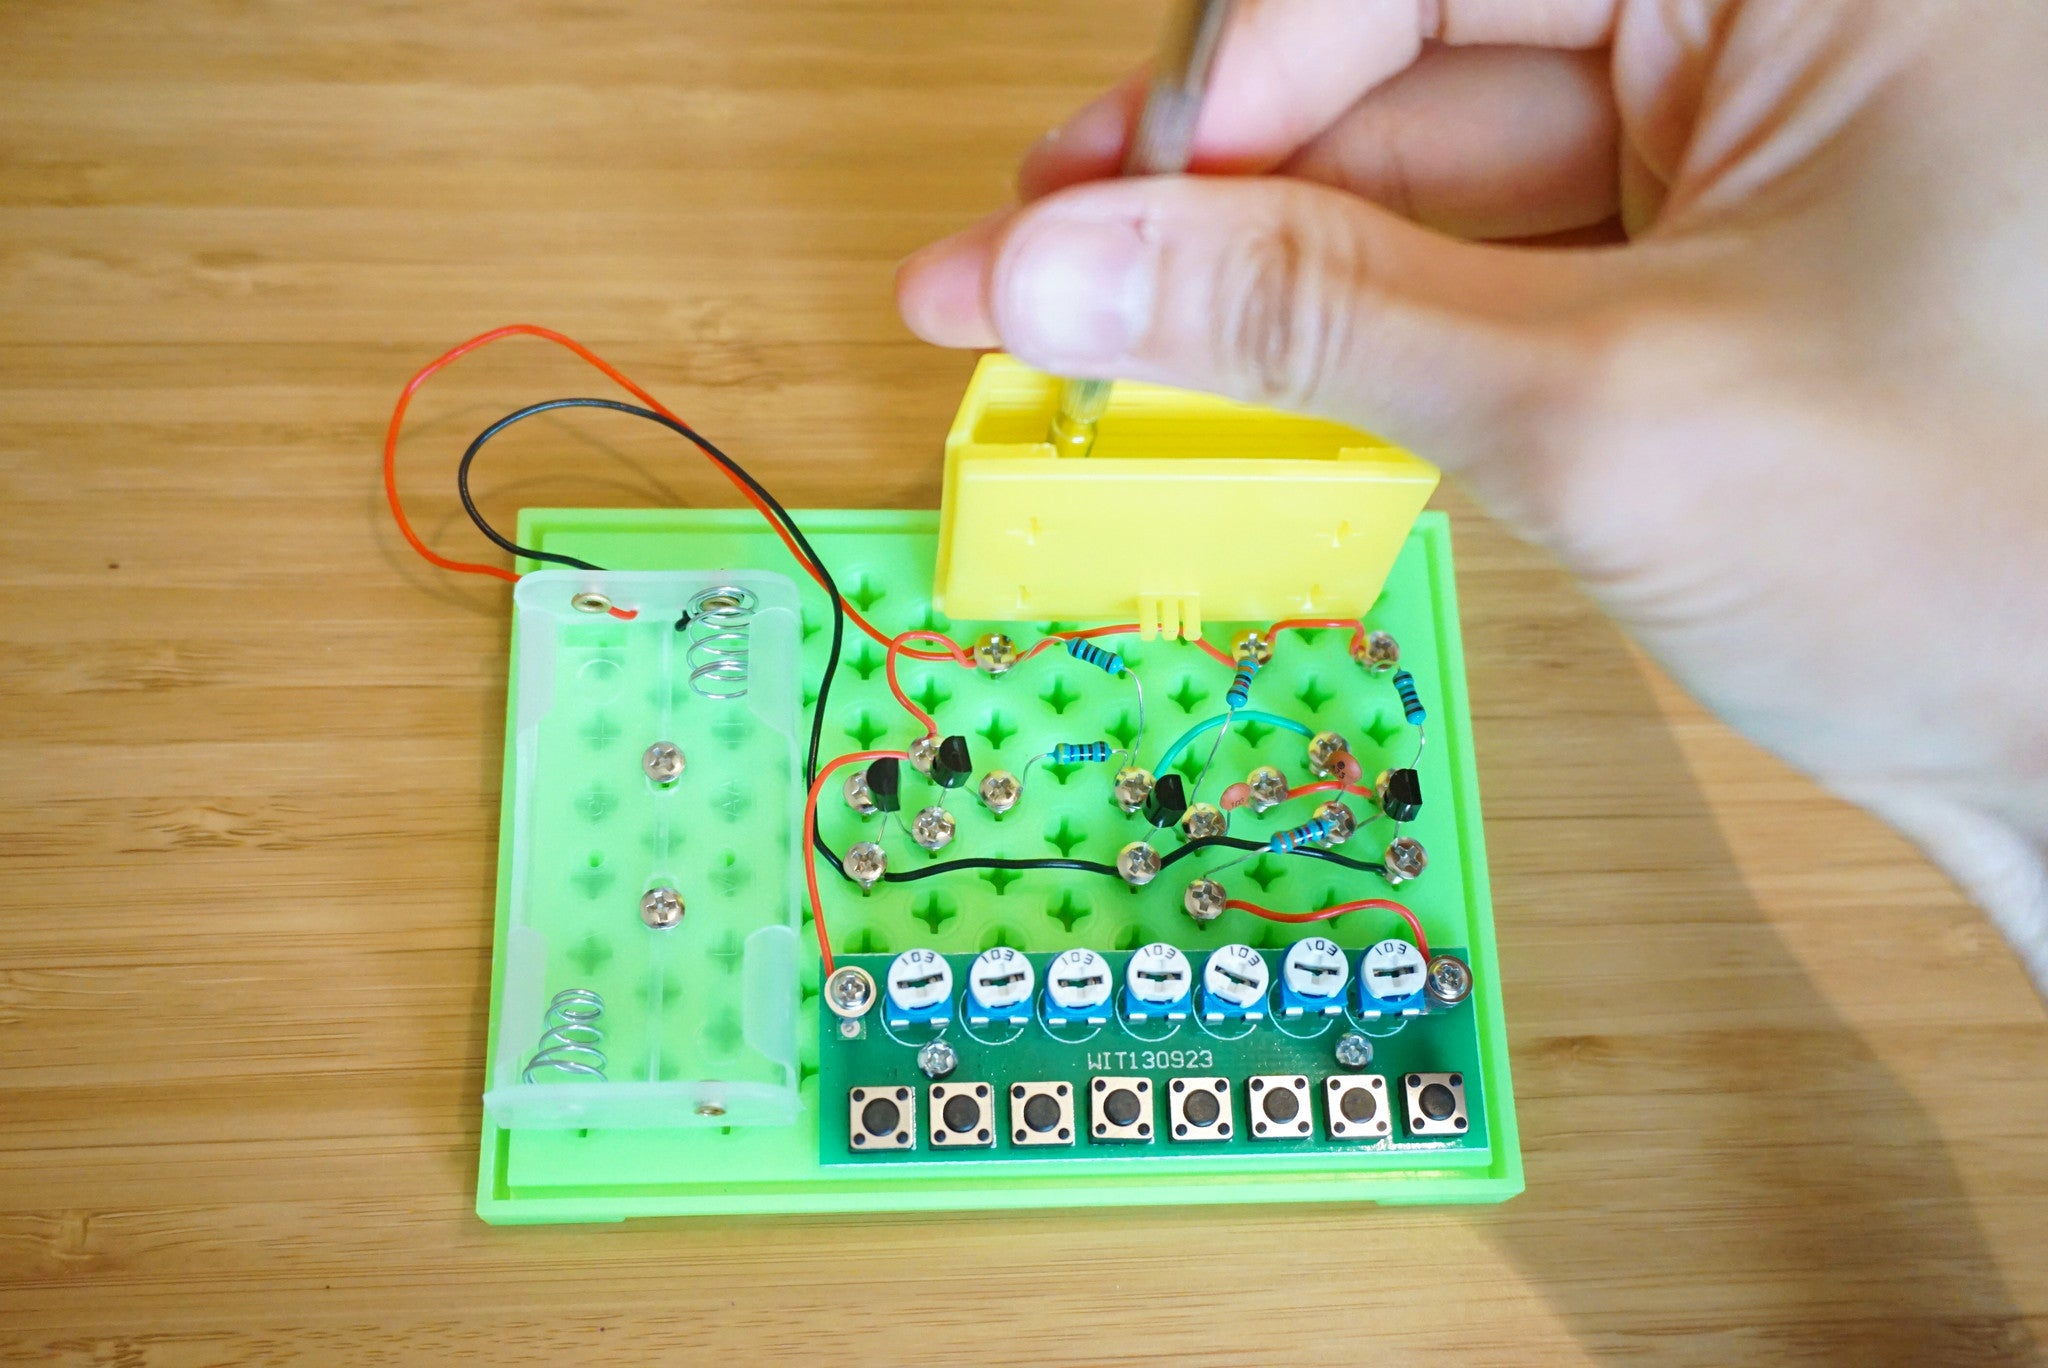 Musical Snap Circuit Piano 8 Keys Mochy Kid Limited Home Products Science Kits Circuits Green Tuneable